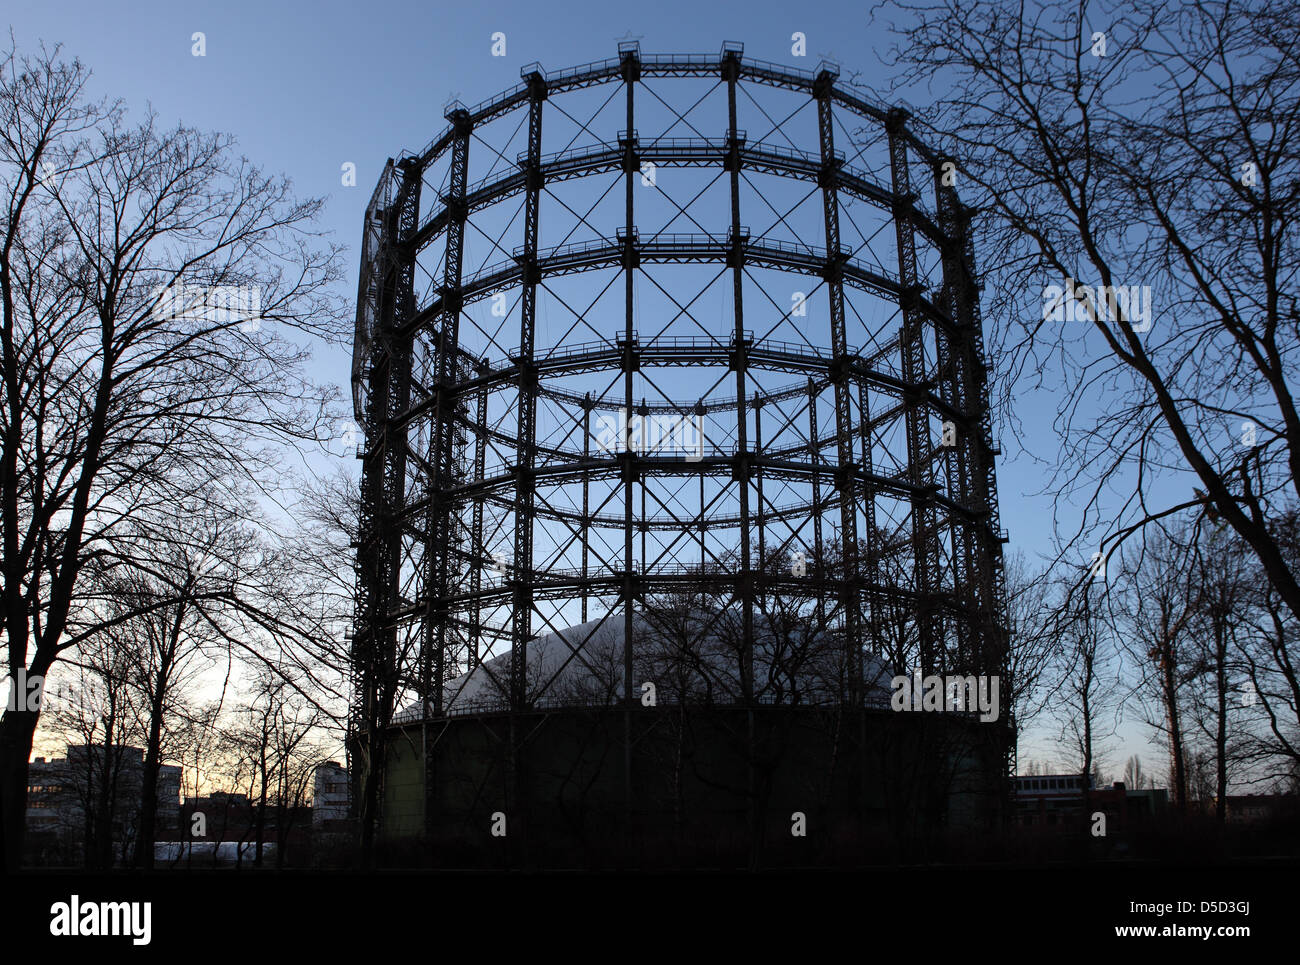 Berlin, Germany, the silhouette of the Gasometer Schoeneberg at dusk - Stock Image